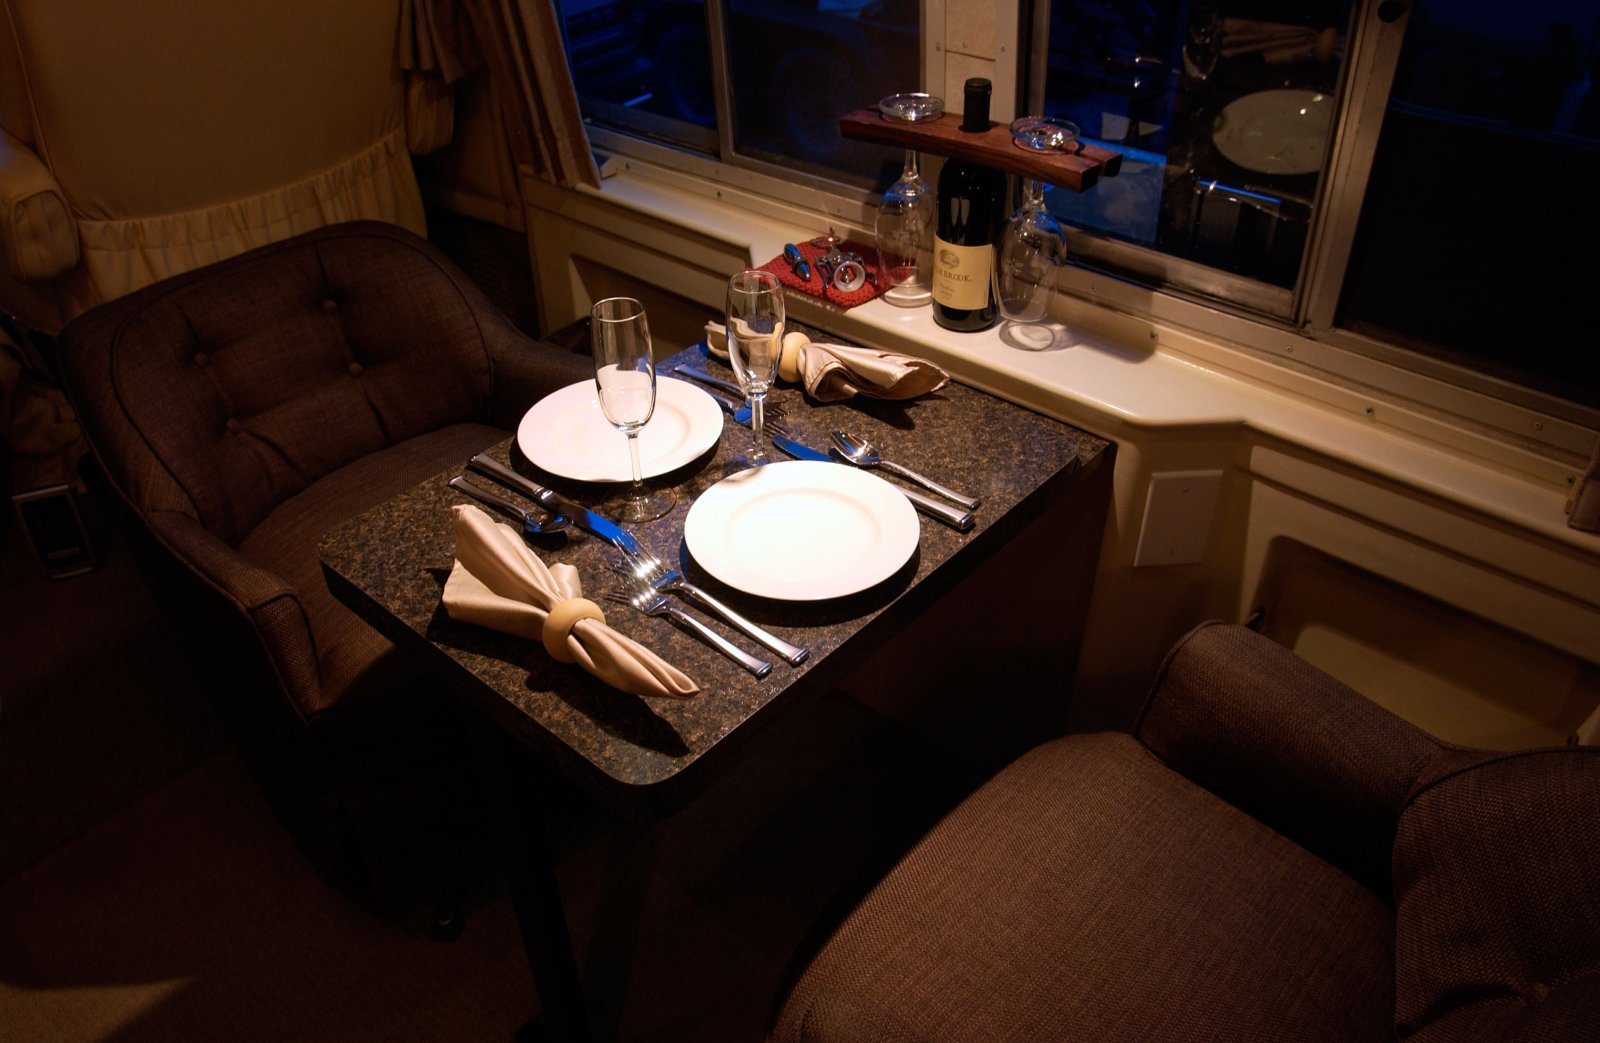 Click image for larger version  Name:DinnerTable-Night-web.jpg Views:85 Size:205.9 KB ID:225296